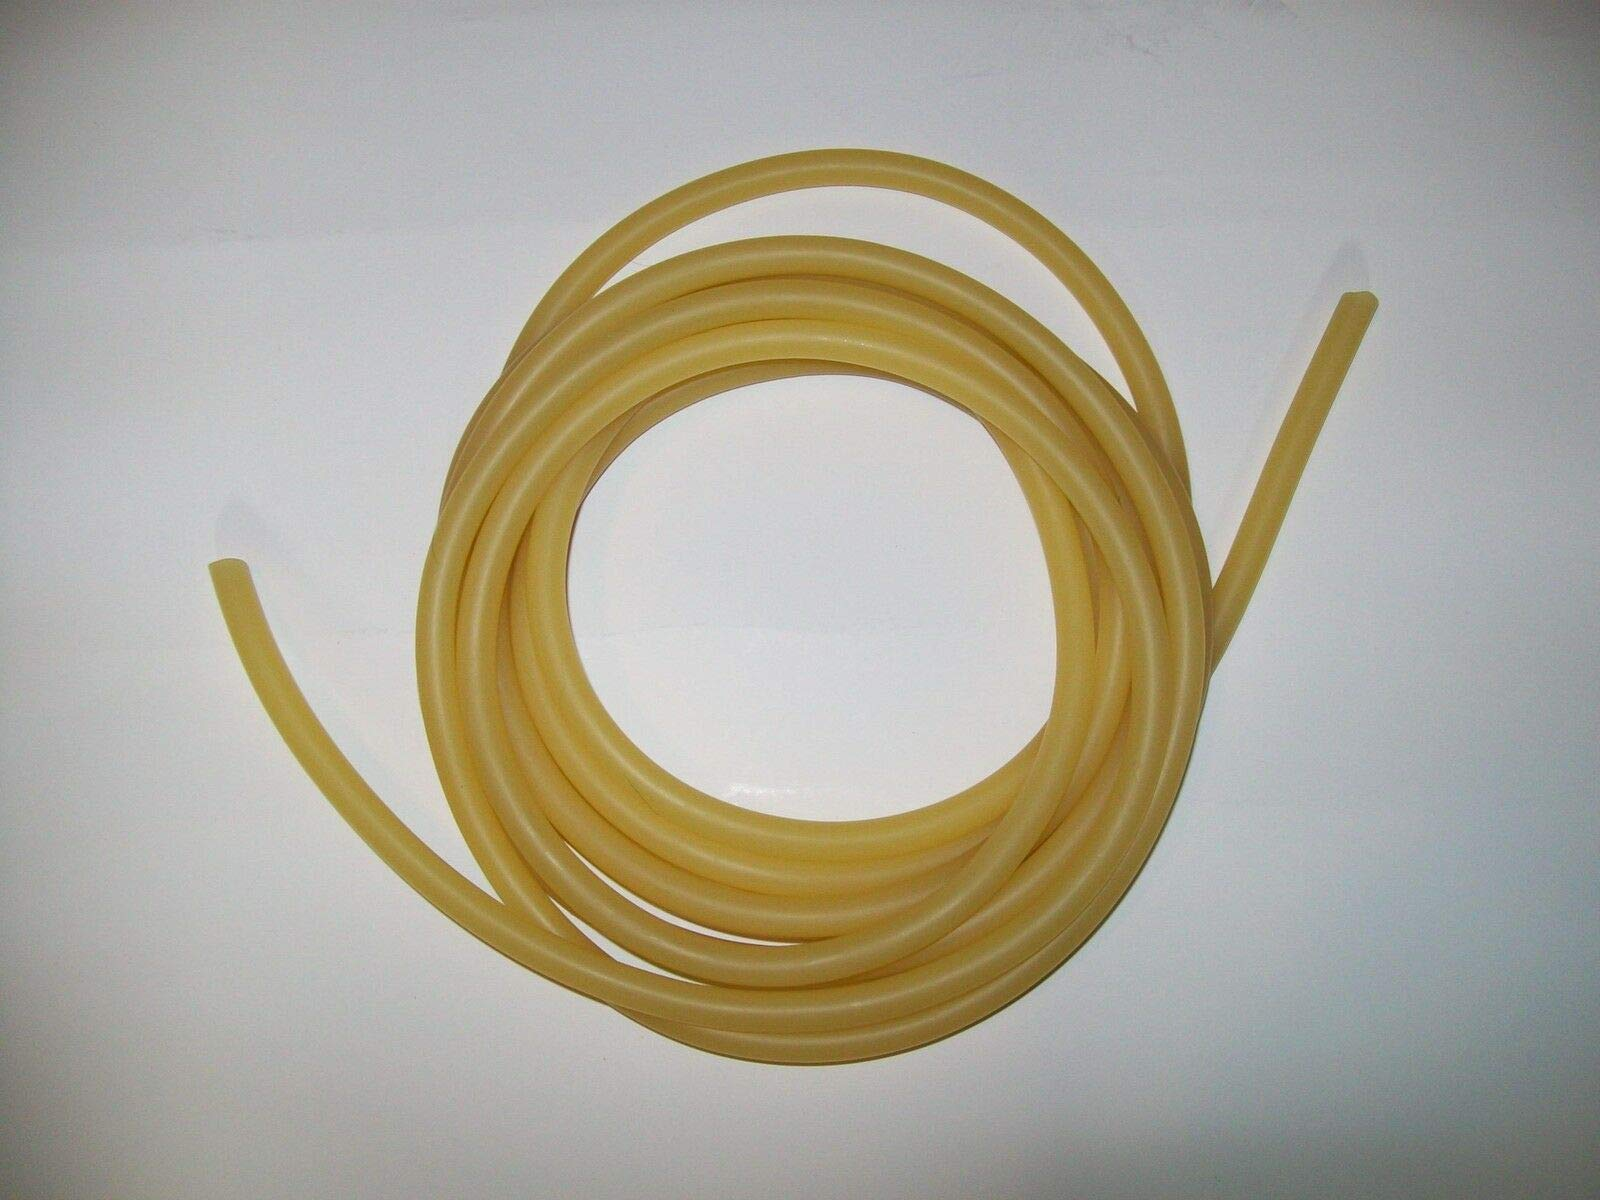 5 Feet 3/8'' I.D x 1/32'' Wall Latex Rubber Tubing Amber Thin Wall by Latex Tubing By Montree Shop